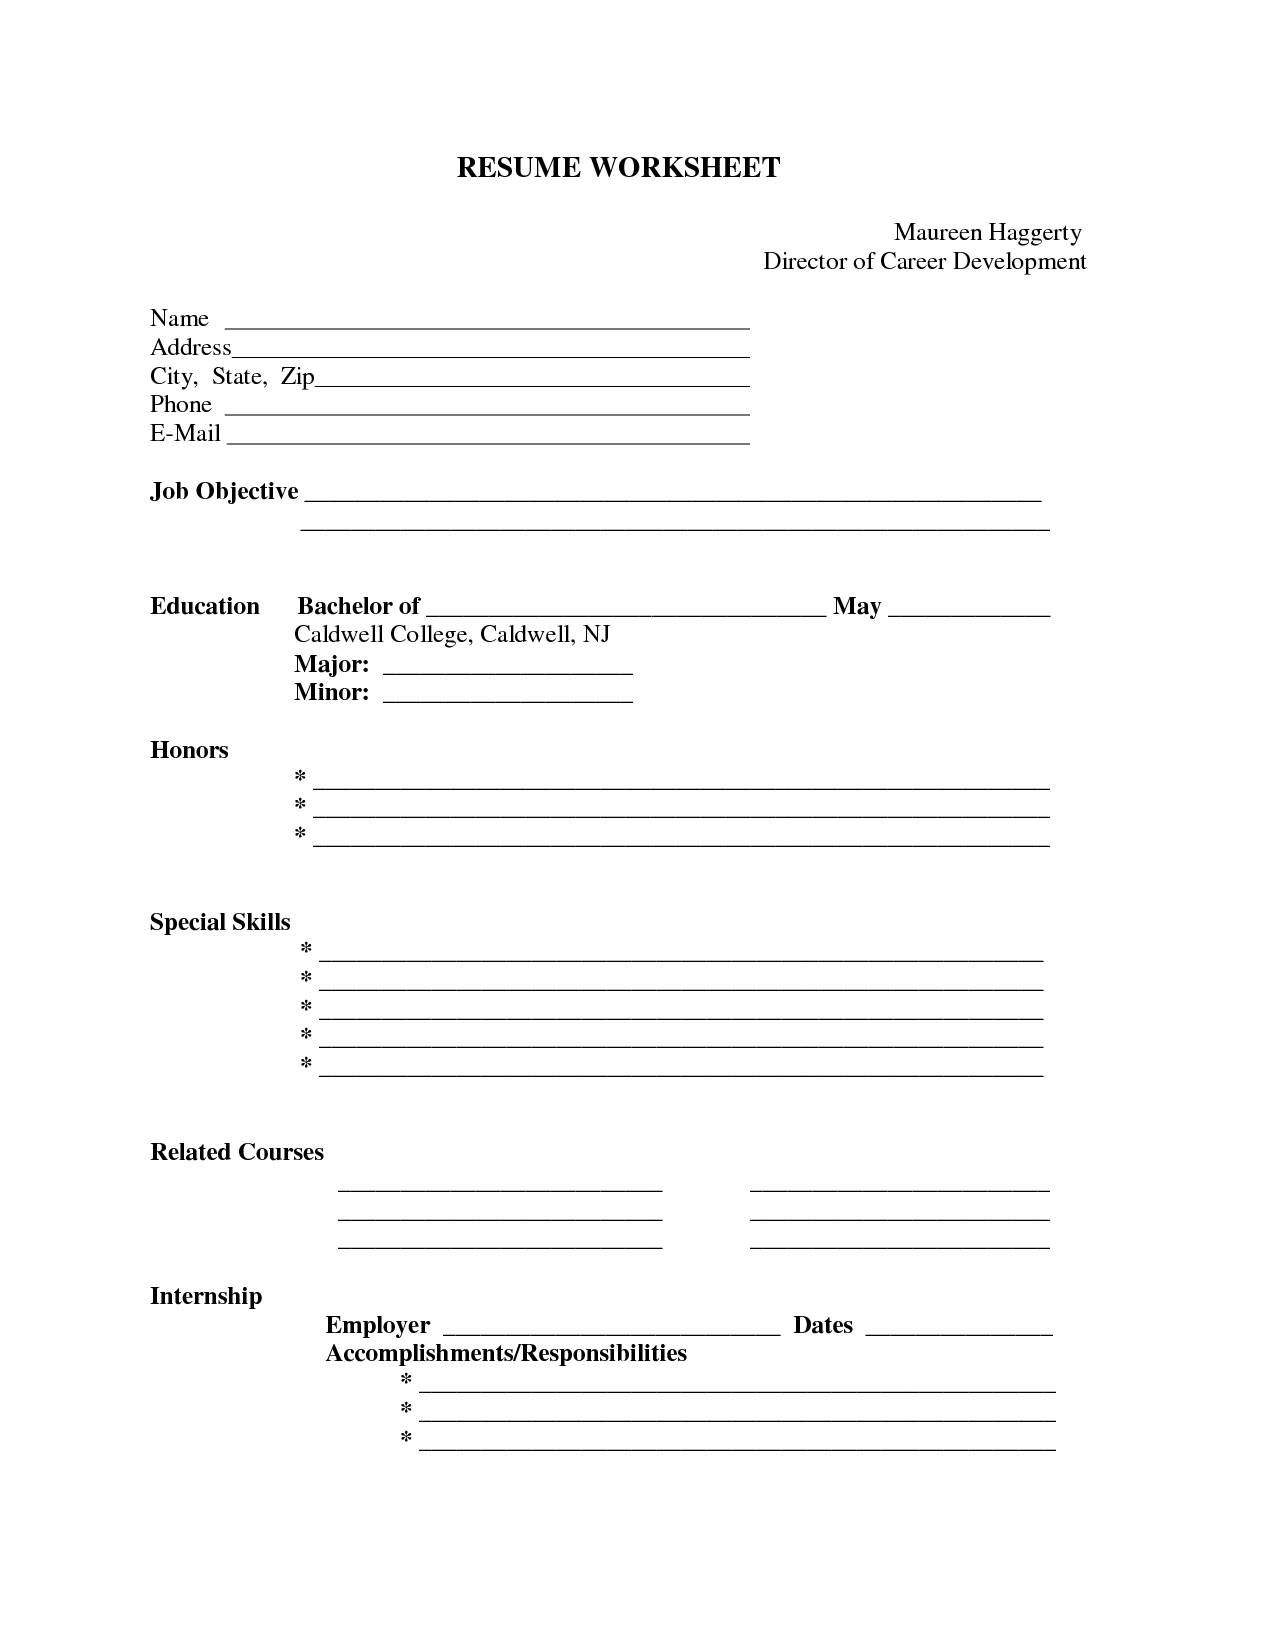 resume free print idas ponderresearch co